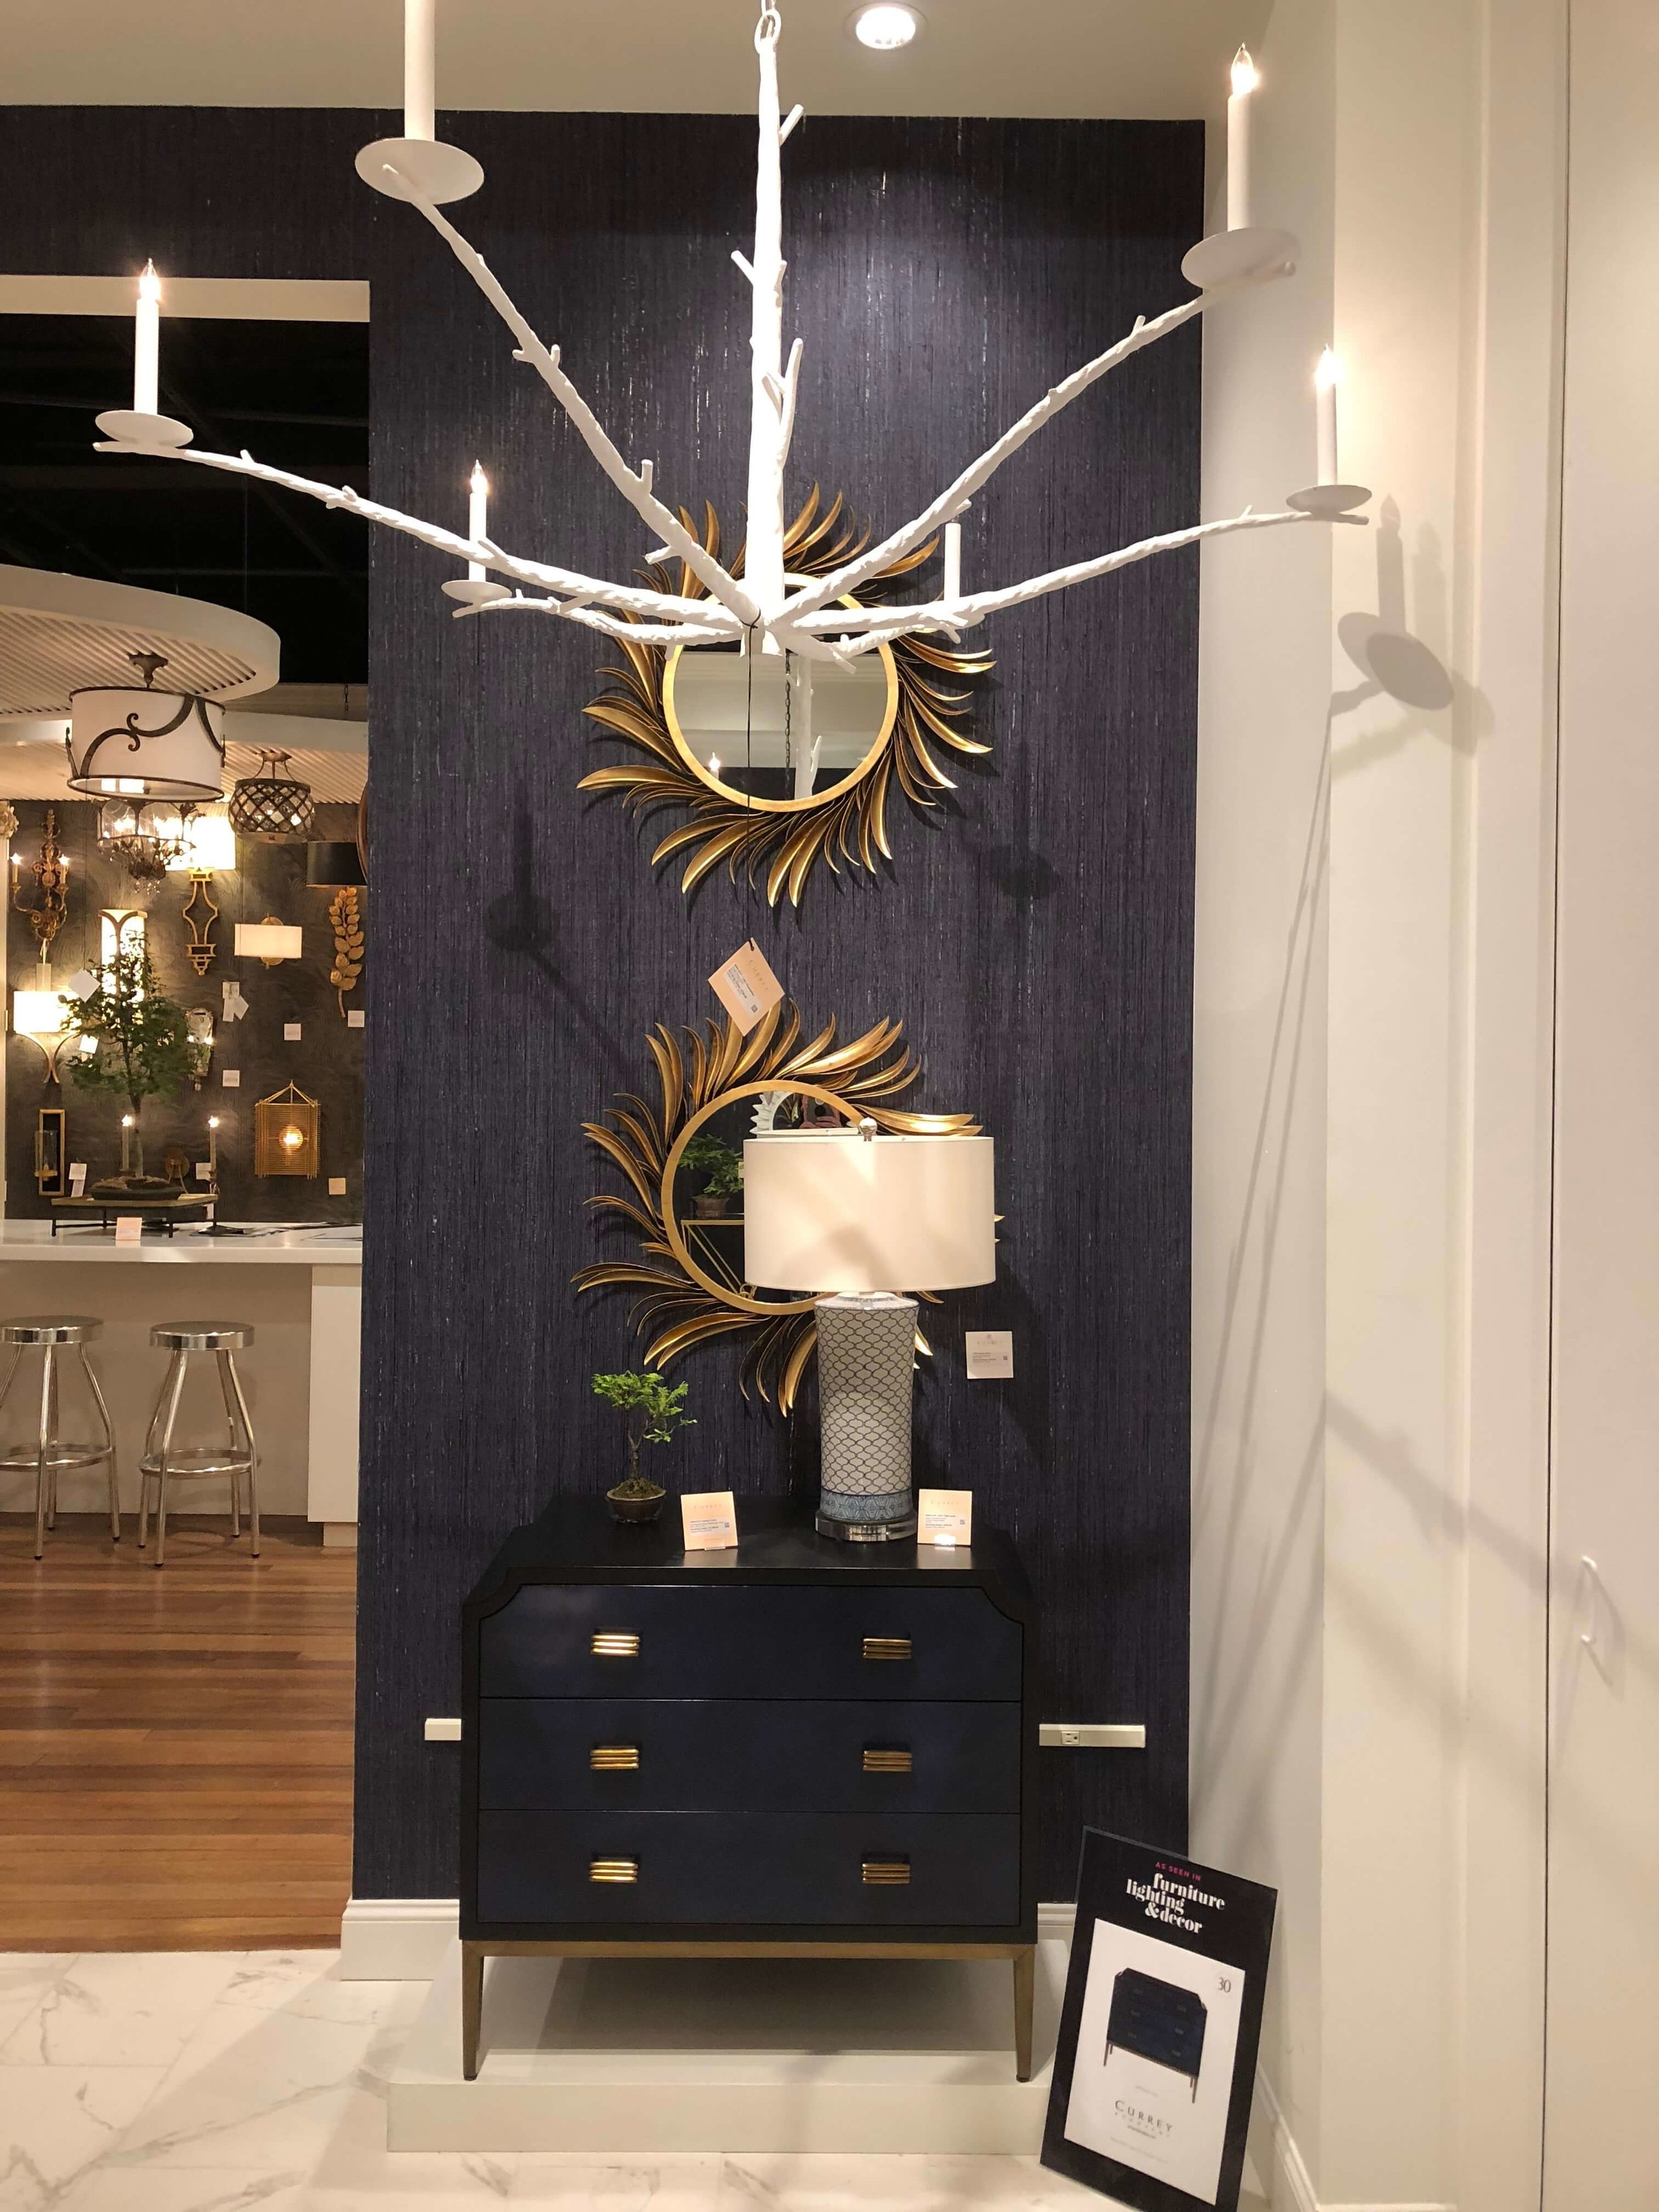 White plaster chandelier at Currey and Co. showroom at Highpoint Market.